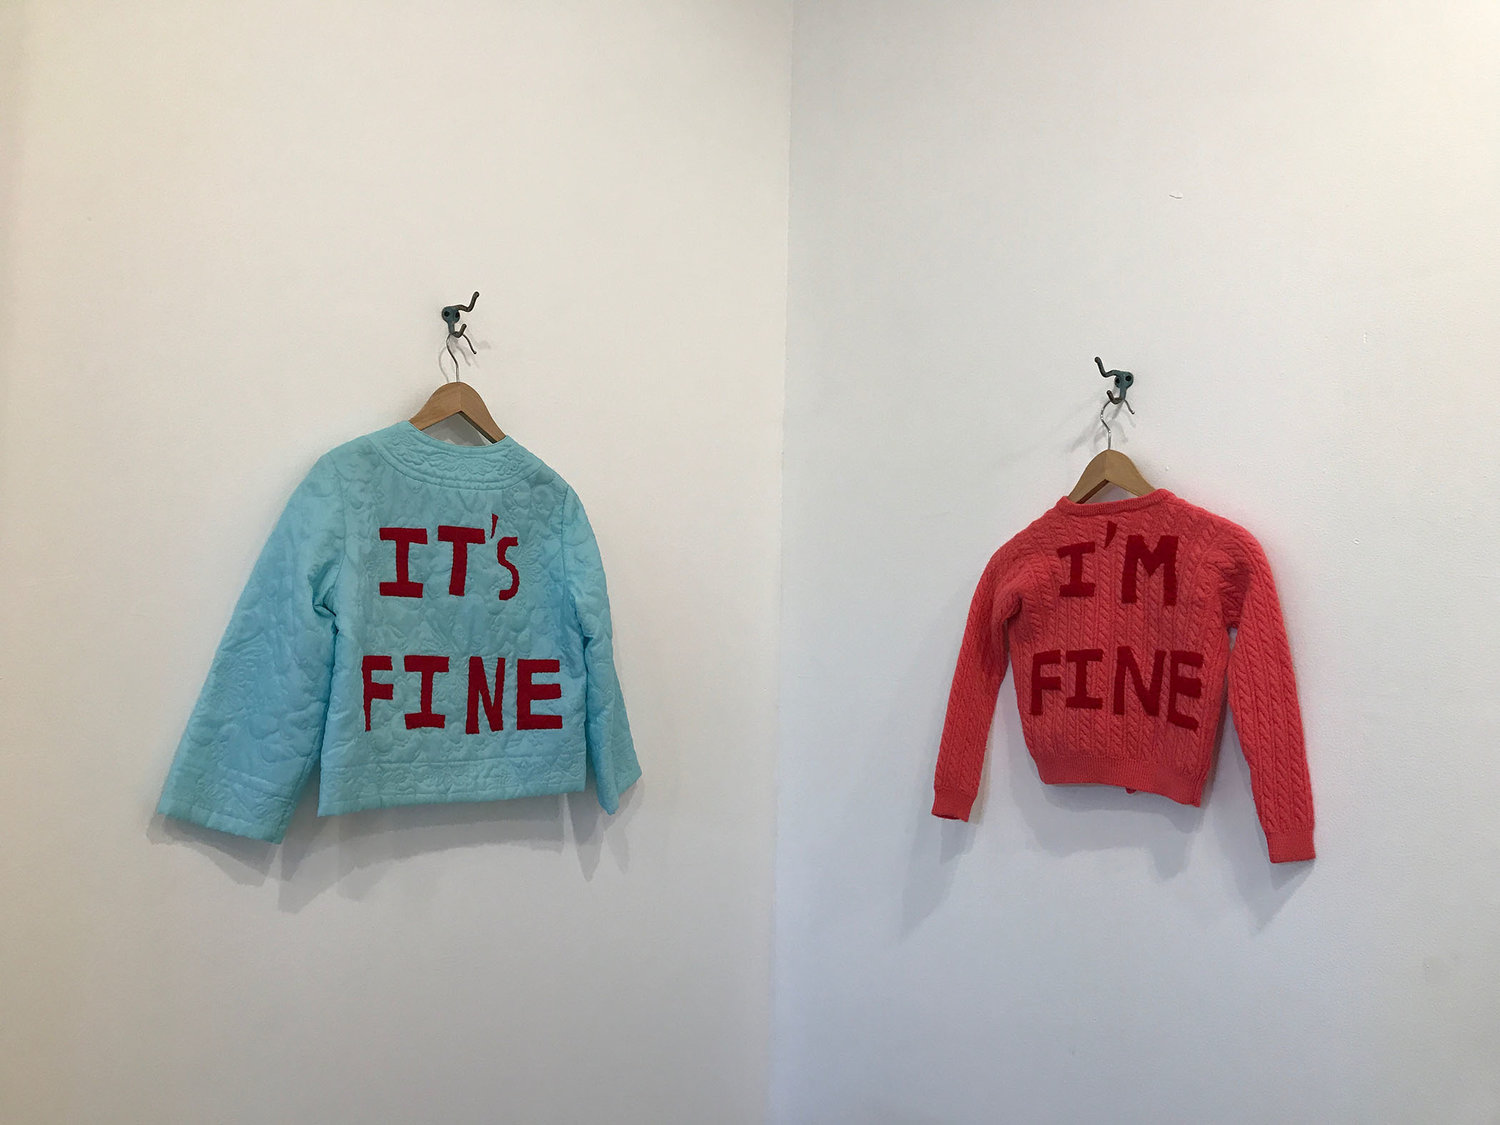 Carole Loeffler's sculptural exhibition features these vintage sweaters made from felt and thread.